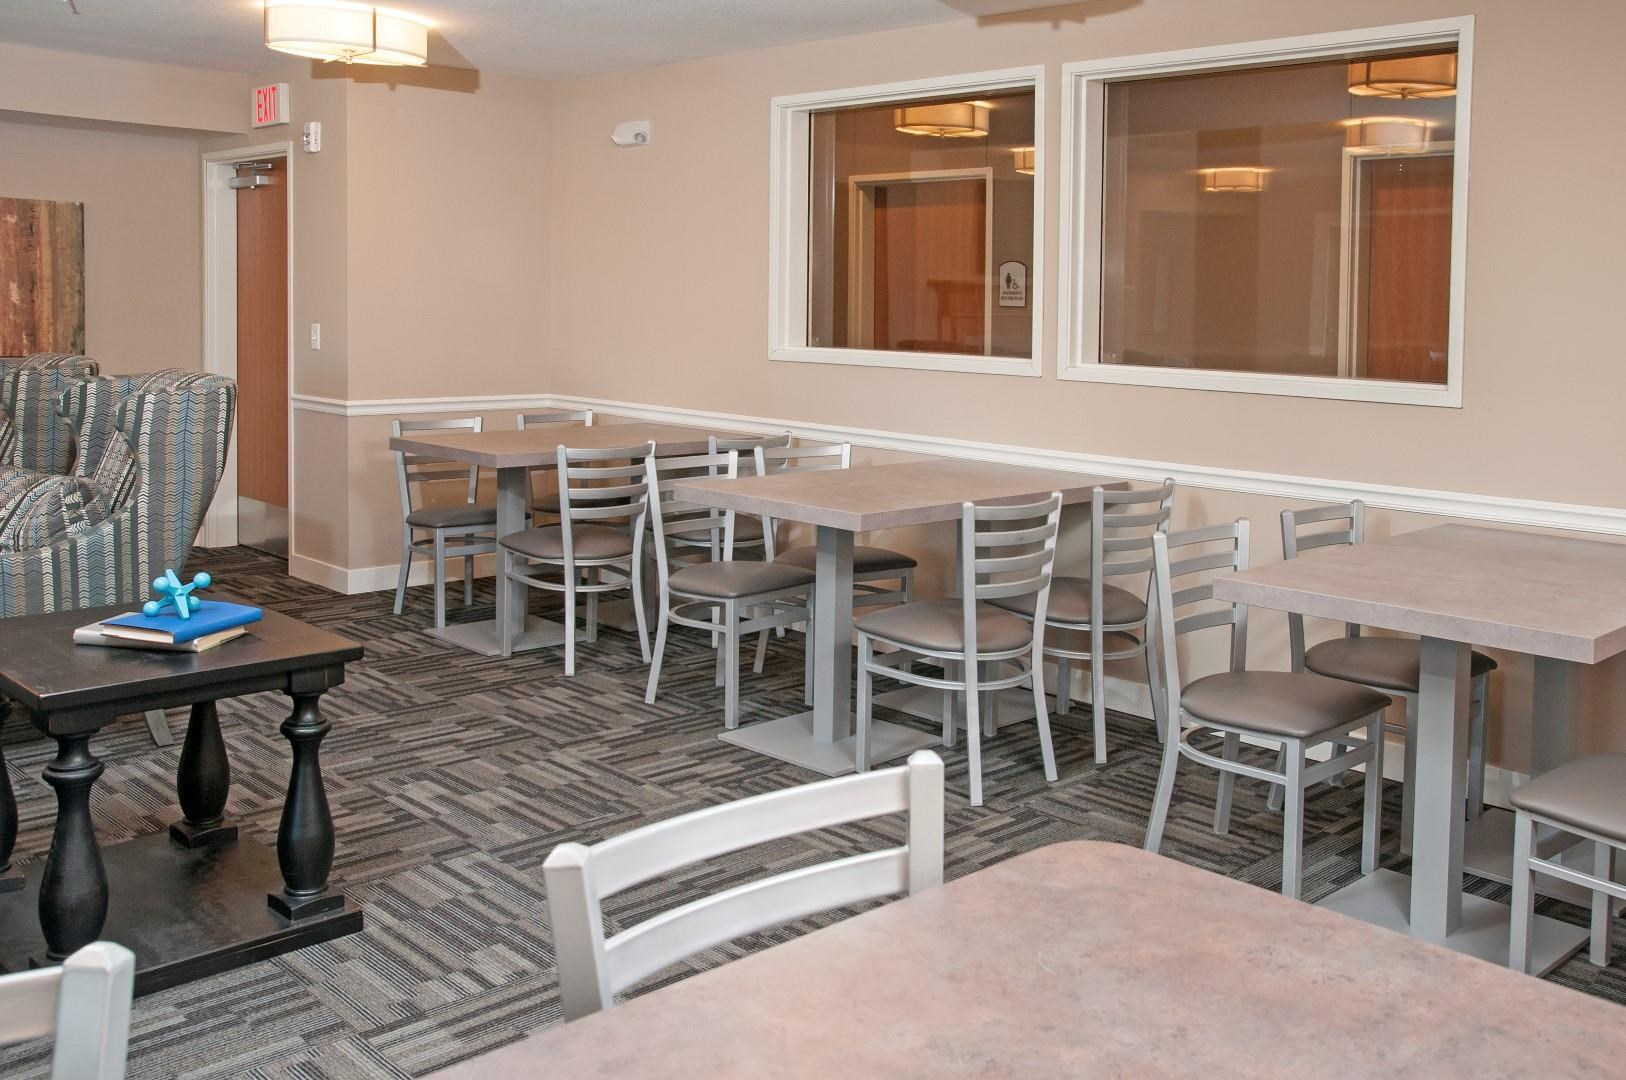 Multiple Small Tables with Chairs for Dining in Community Room in Carver, MN Apartments